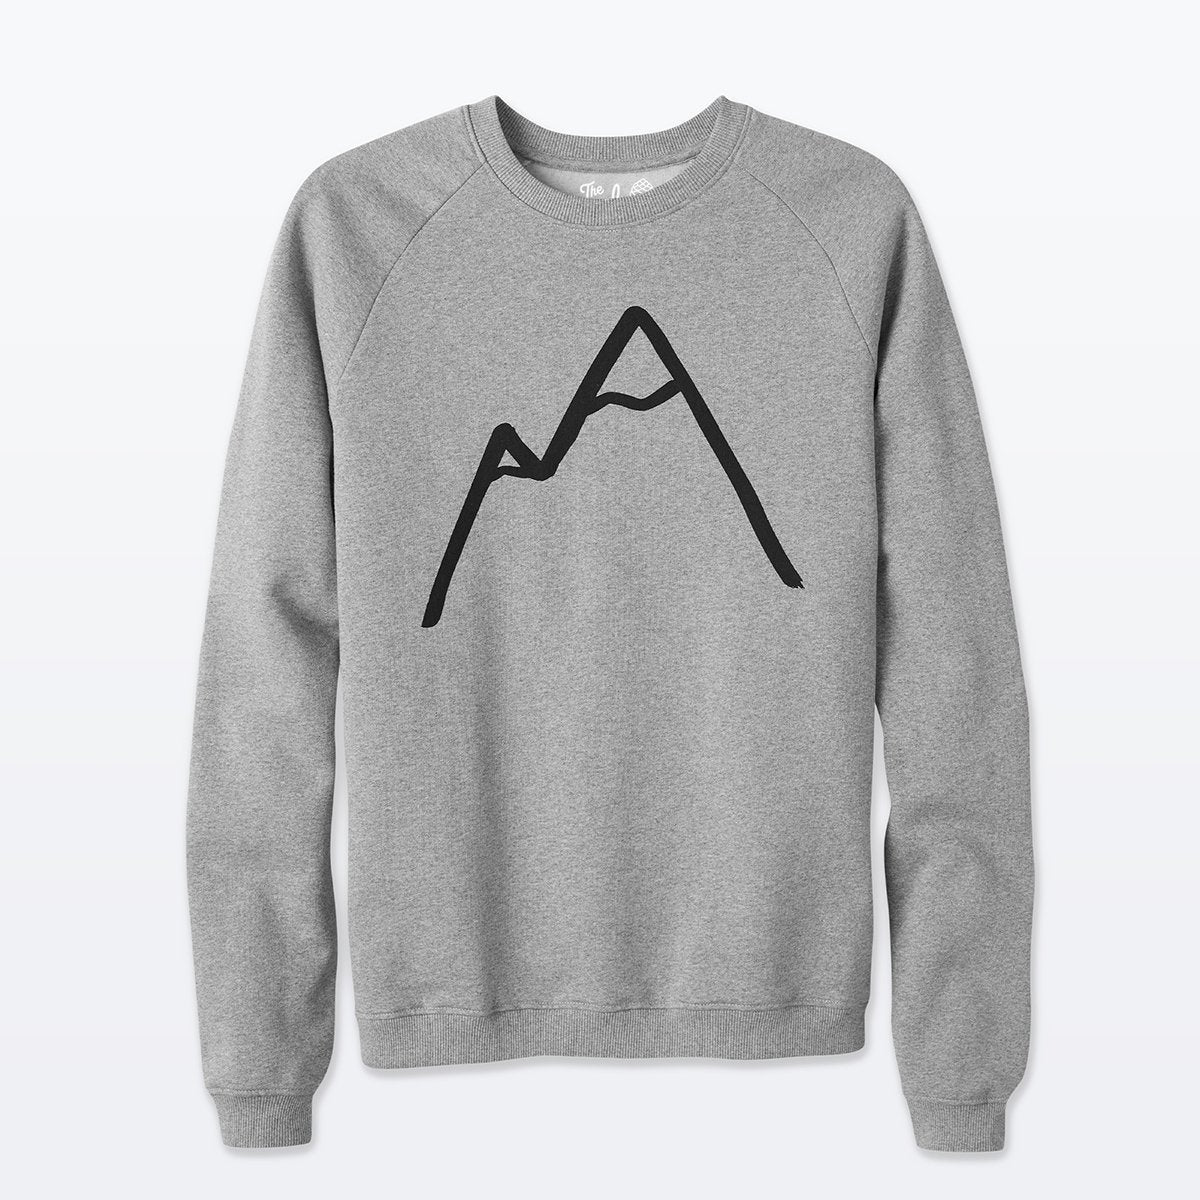 The Level Collective | Simple Mountain Sweatshirt | Cotton Jumper | Grey